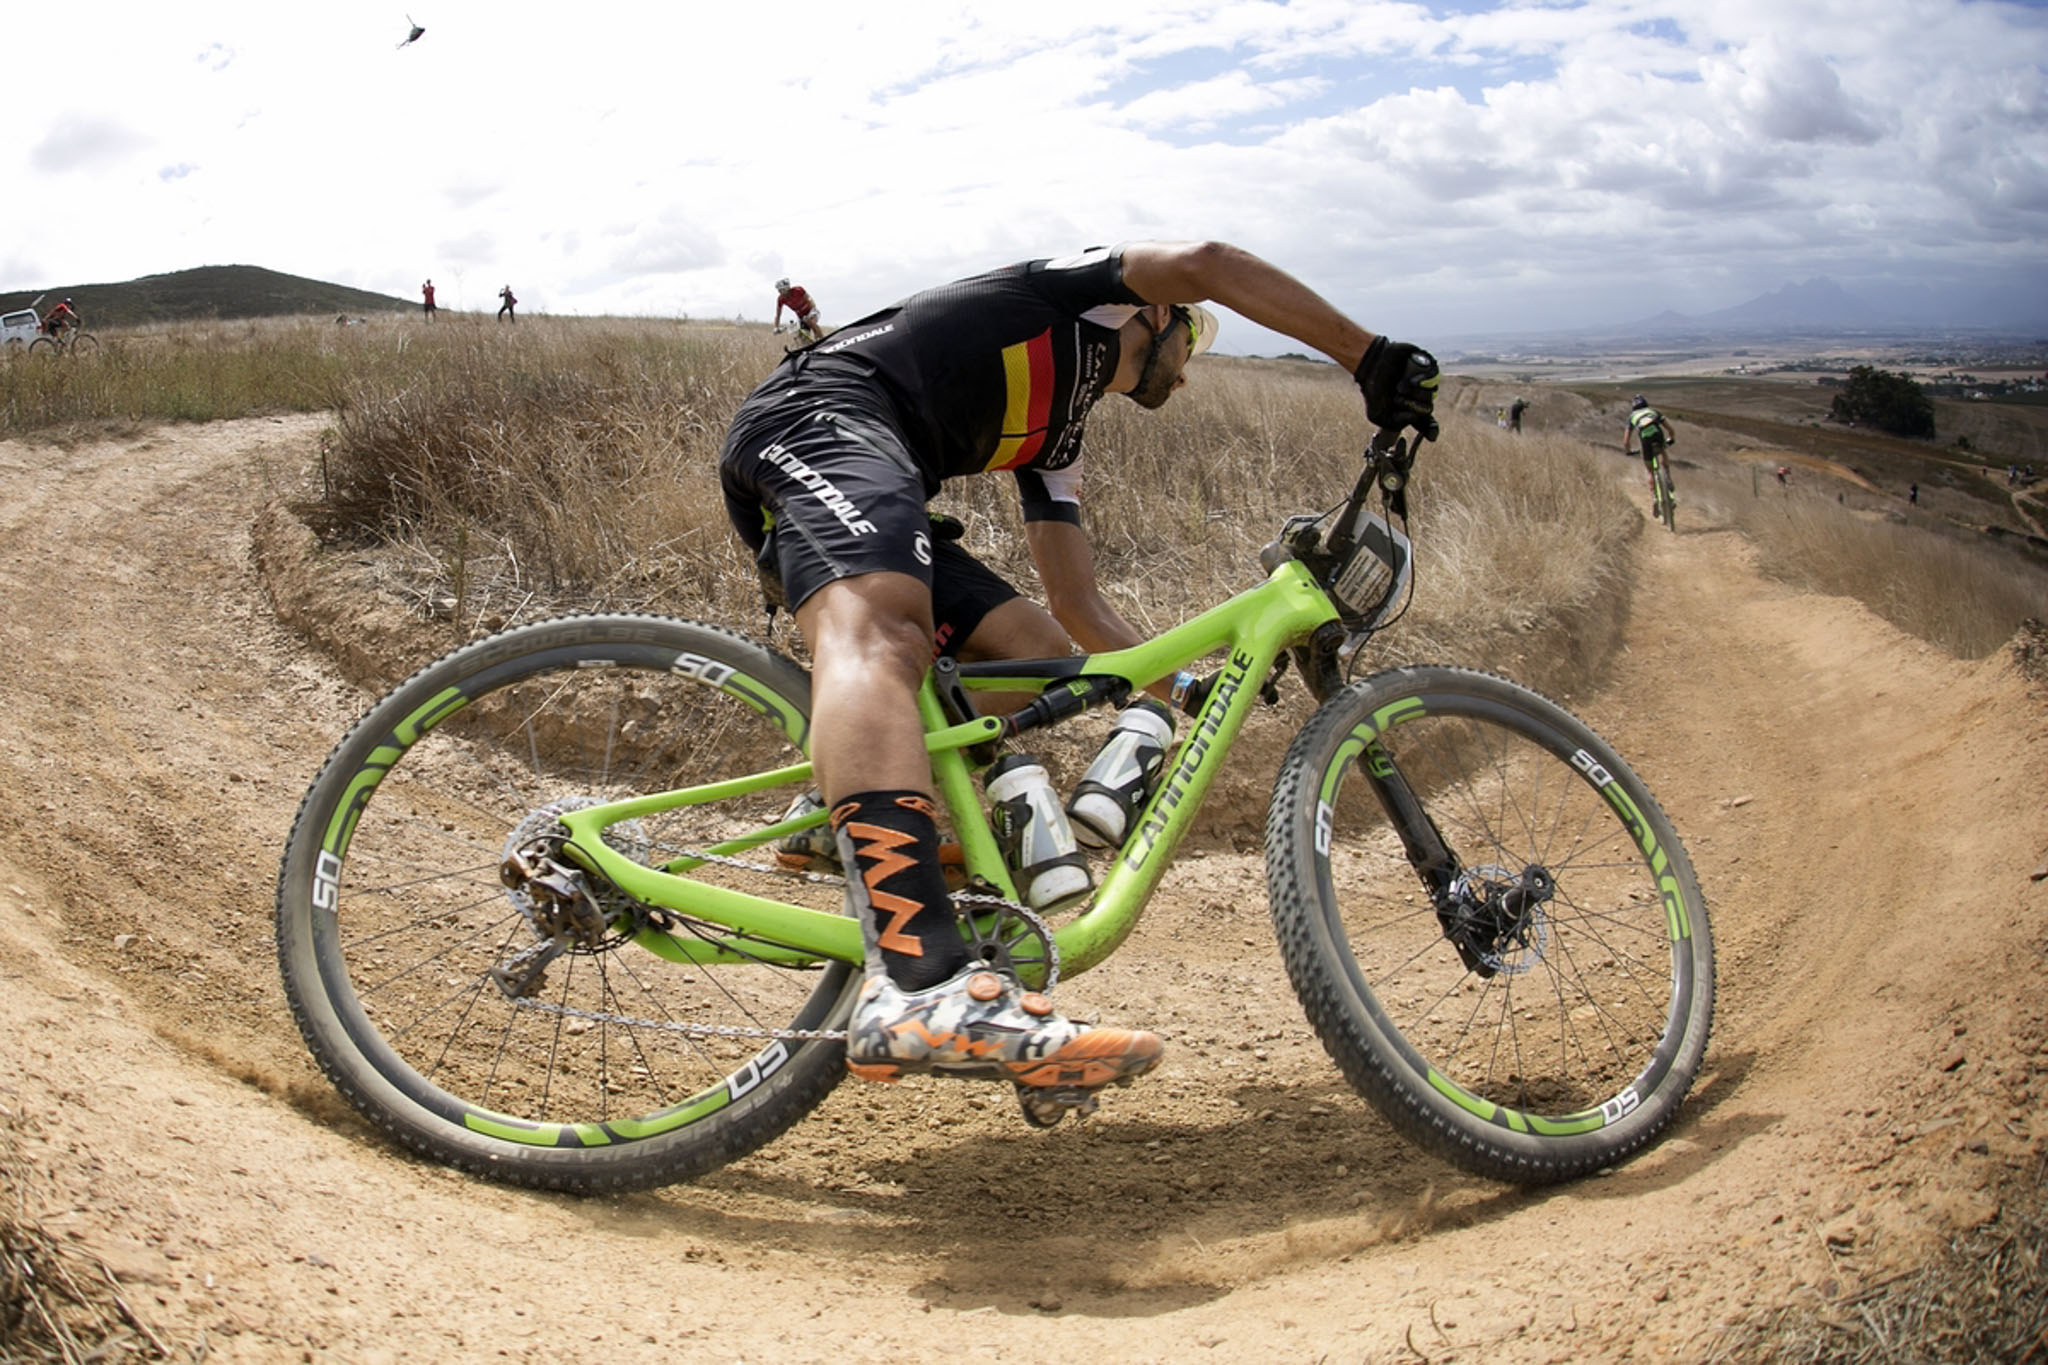 Manuel Fumic of Team Cannondale Factory Racing during the final stage (stage 7) of the 2016 Absa Cape Epic Mountain Bike stage race from Boschendal in Stellenbosch to Meerendal Wine Estate in Durbanville, South Africa on the 20th March 2016 Photo by Mark Sampson/Cape Epic/SPORTZPICS PLEASE ENSURE THE APPROPRIATE CREDIT IS GIVEN TO THE PHOTOGRAPHER AND SPORTZPICS ALONG WITH THE ABSA CAPE EPIC ace2016